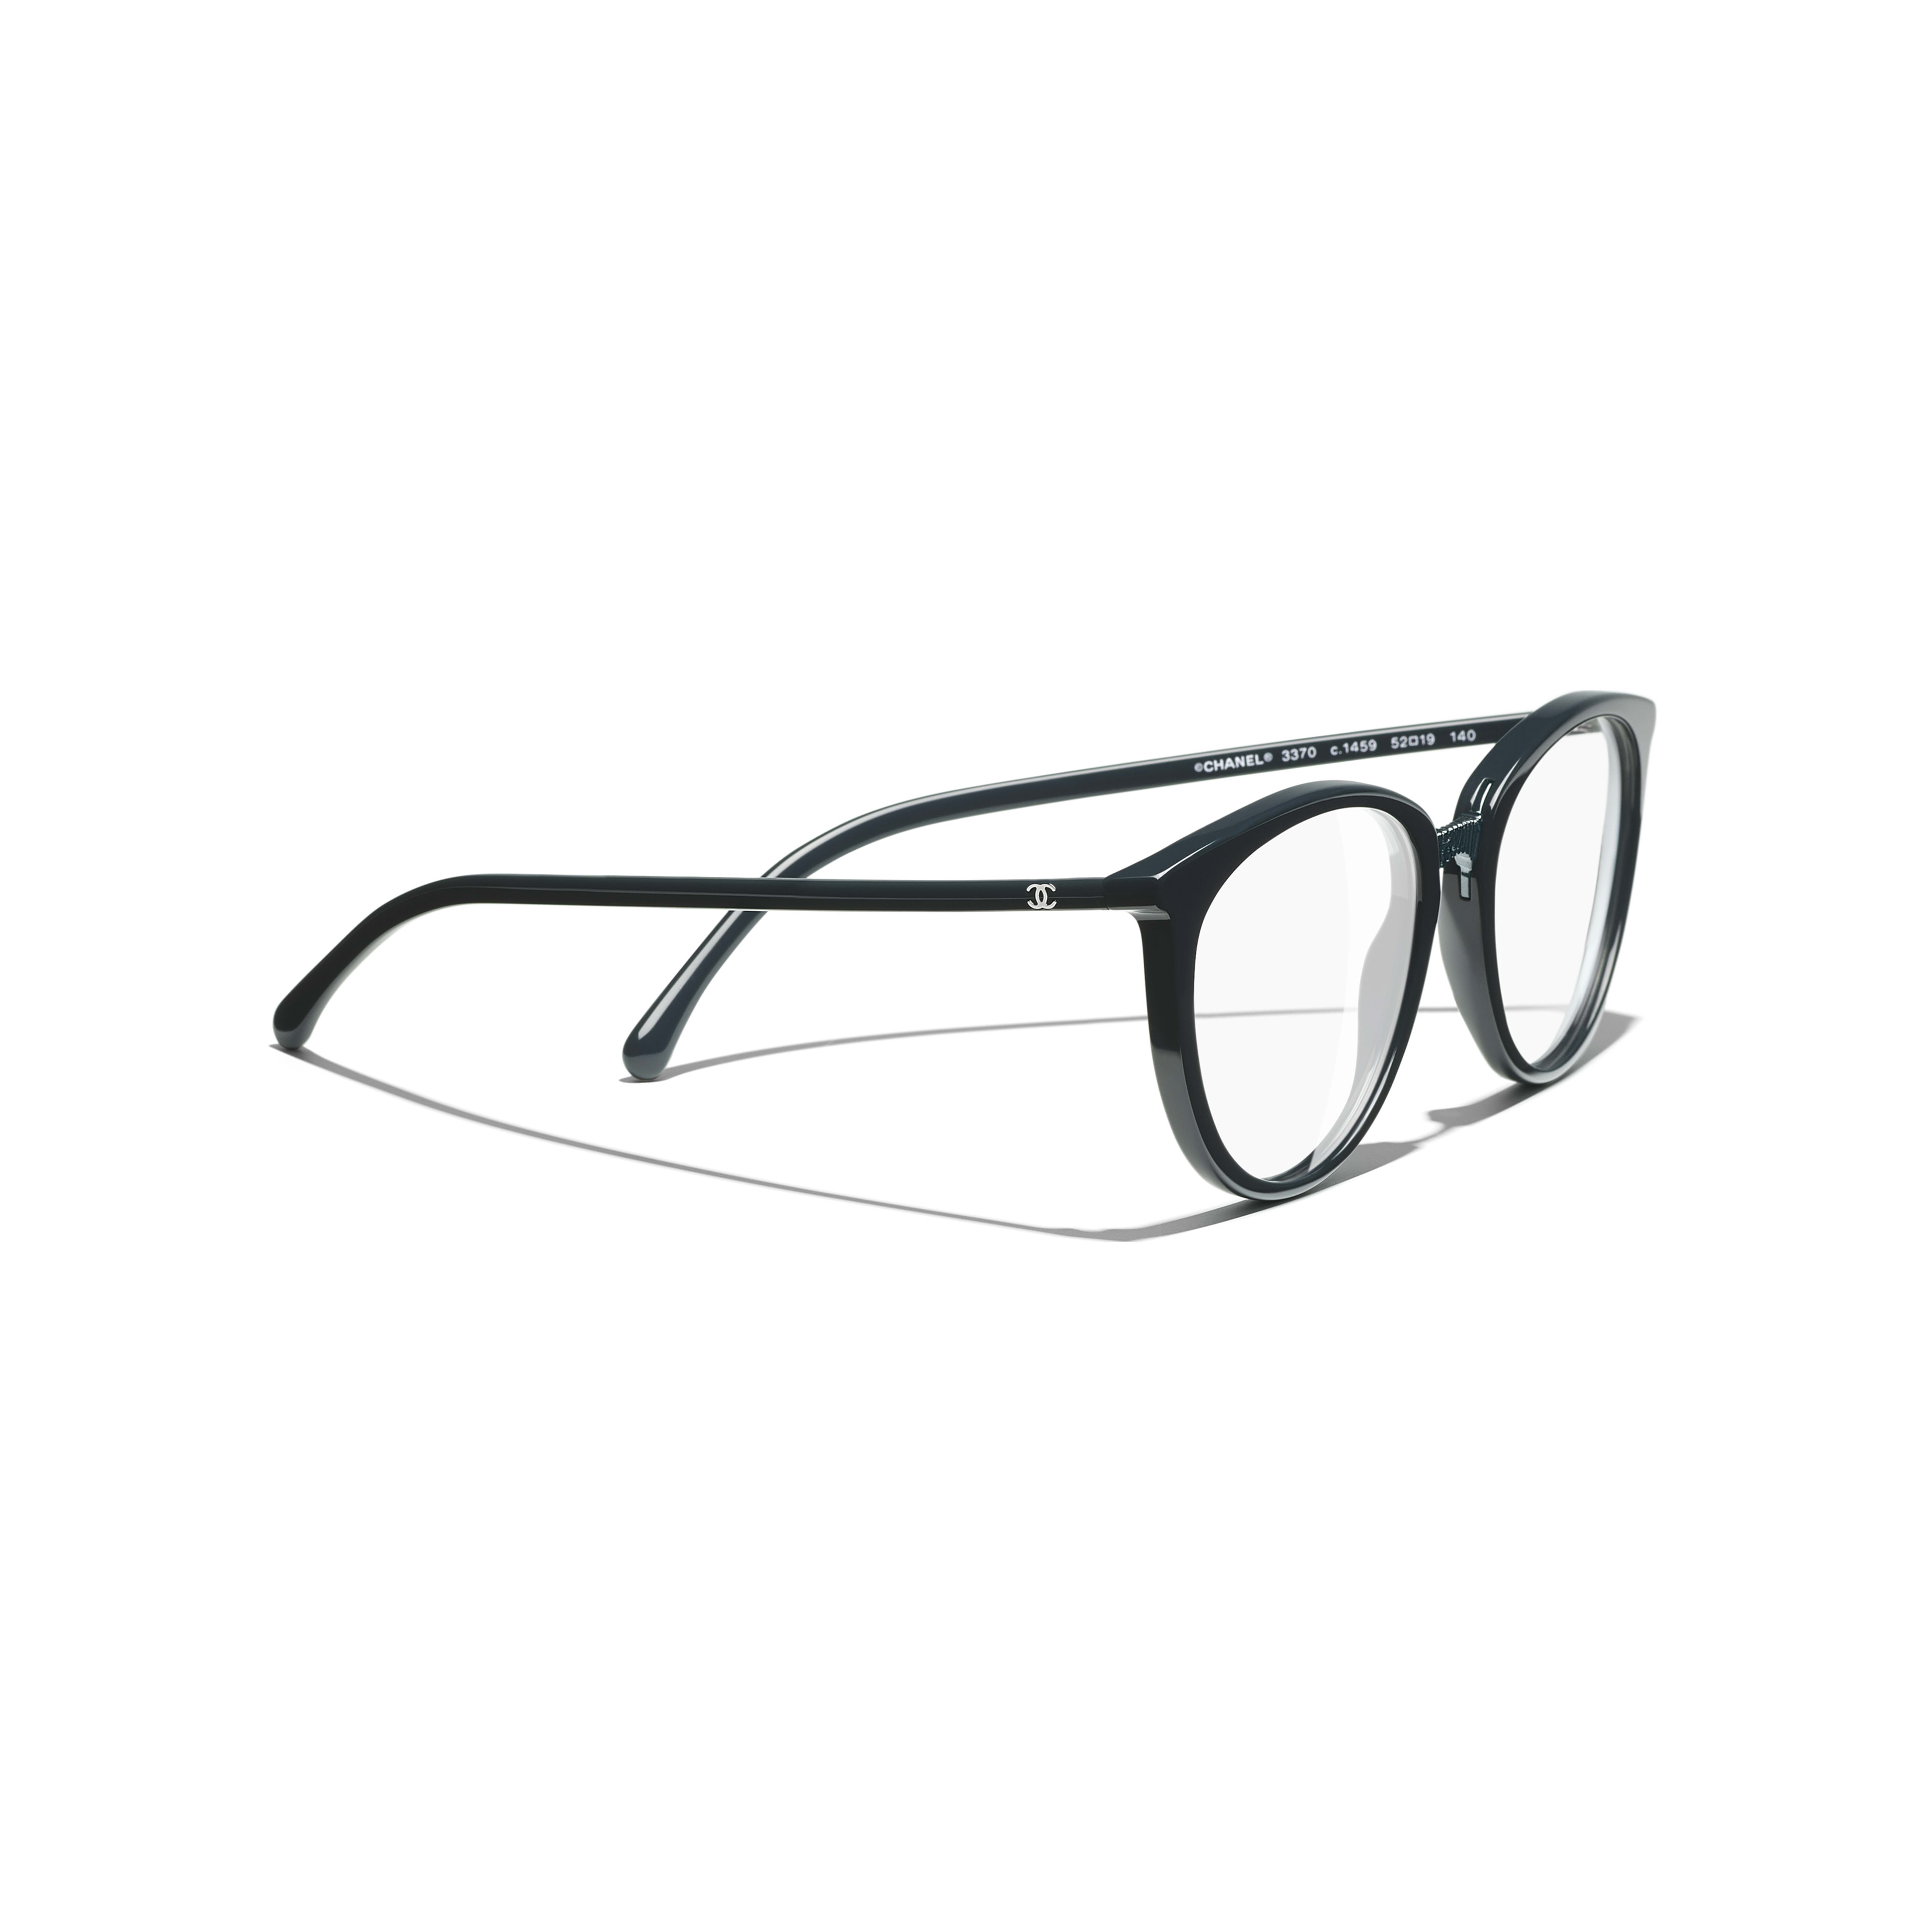 Butterfly Eyeglasses - Dark Green - Acetate - Extra view - see full sized version